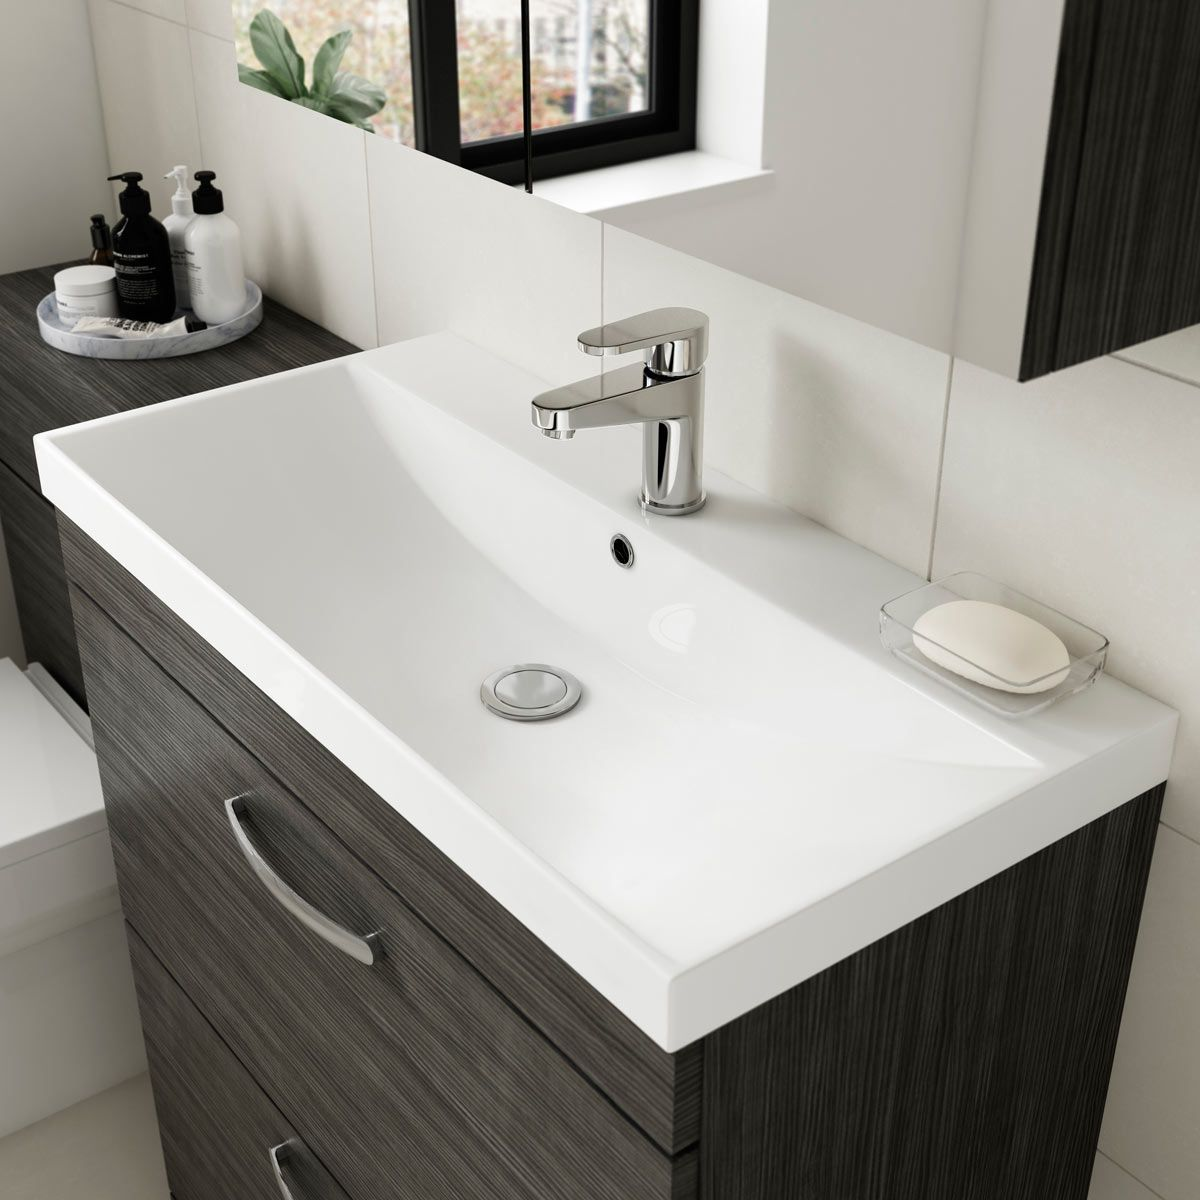 Premier Athena Basin Option 3 - Thin Edge Basin